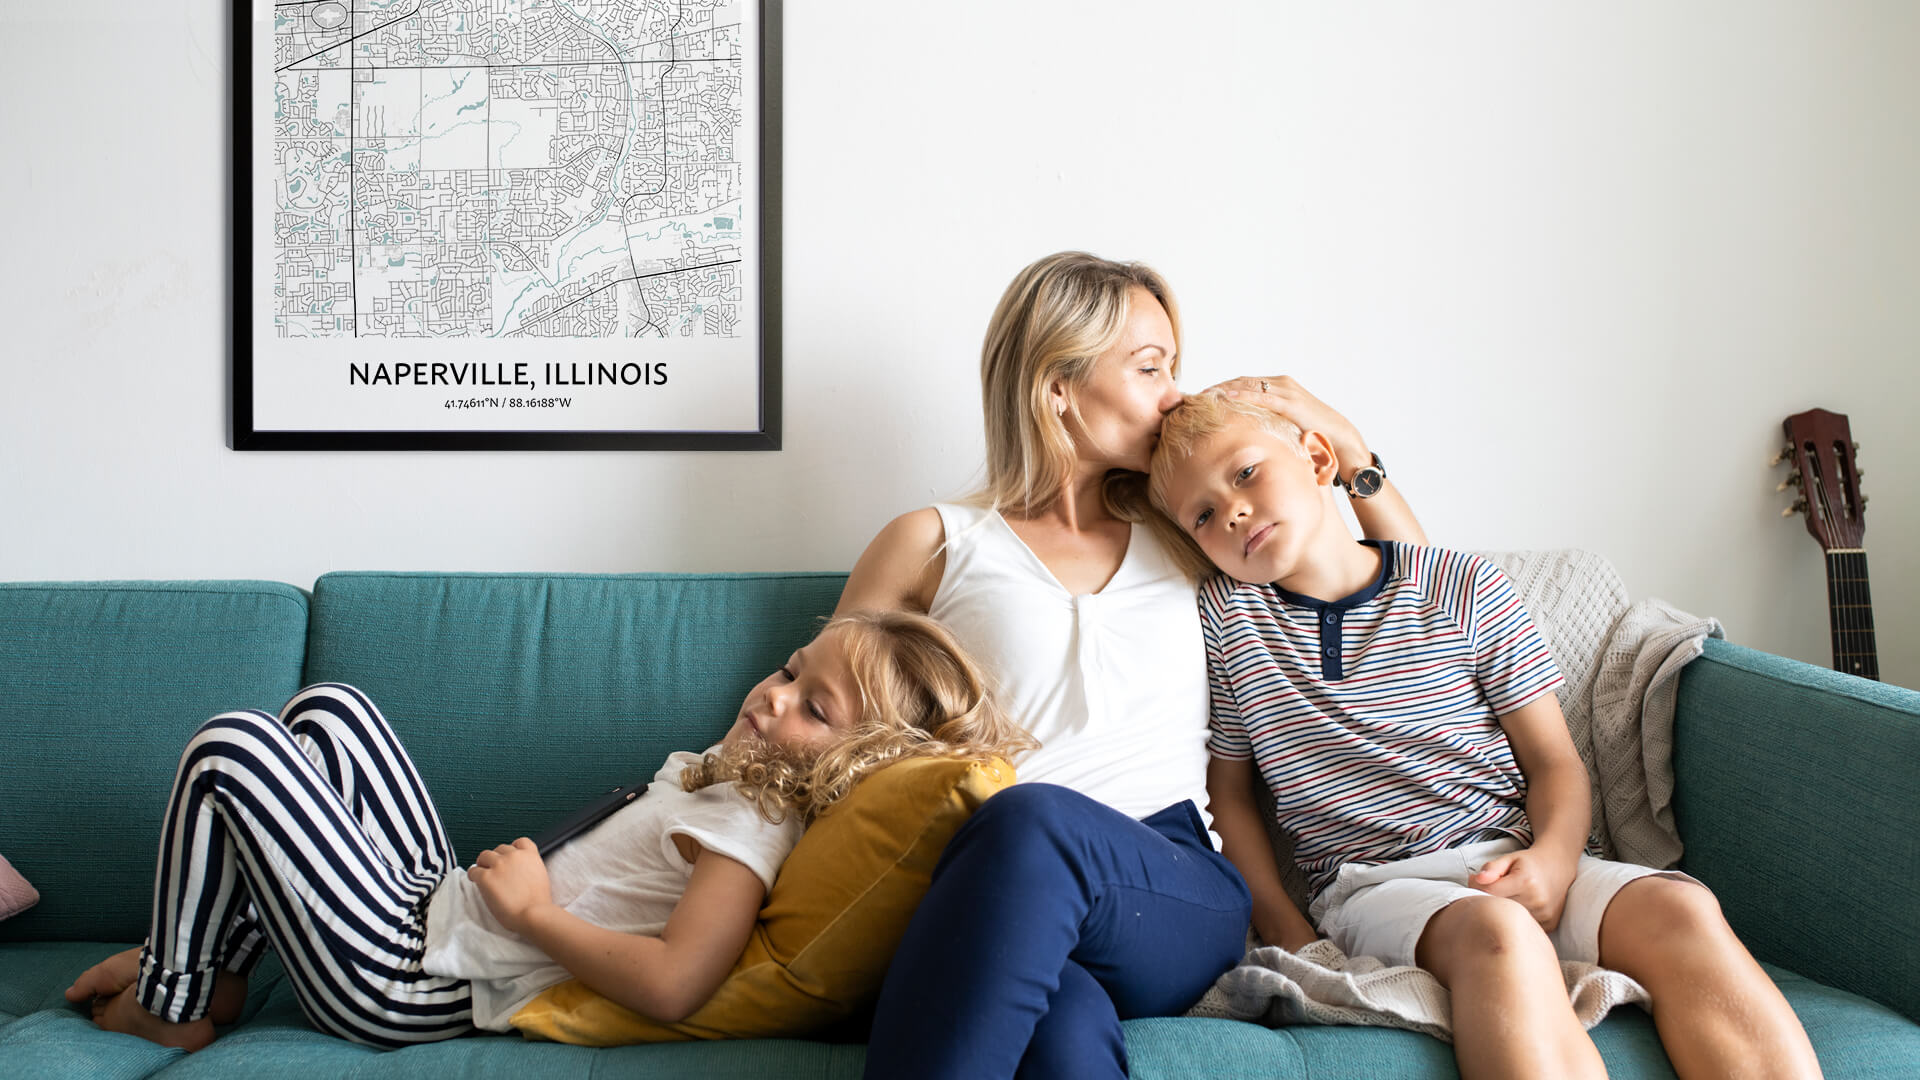 Naperville map poster